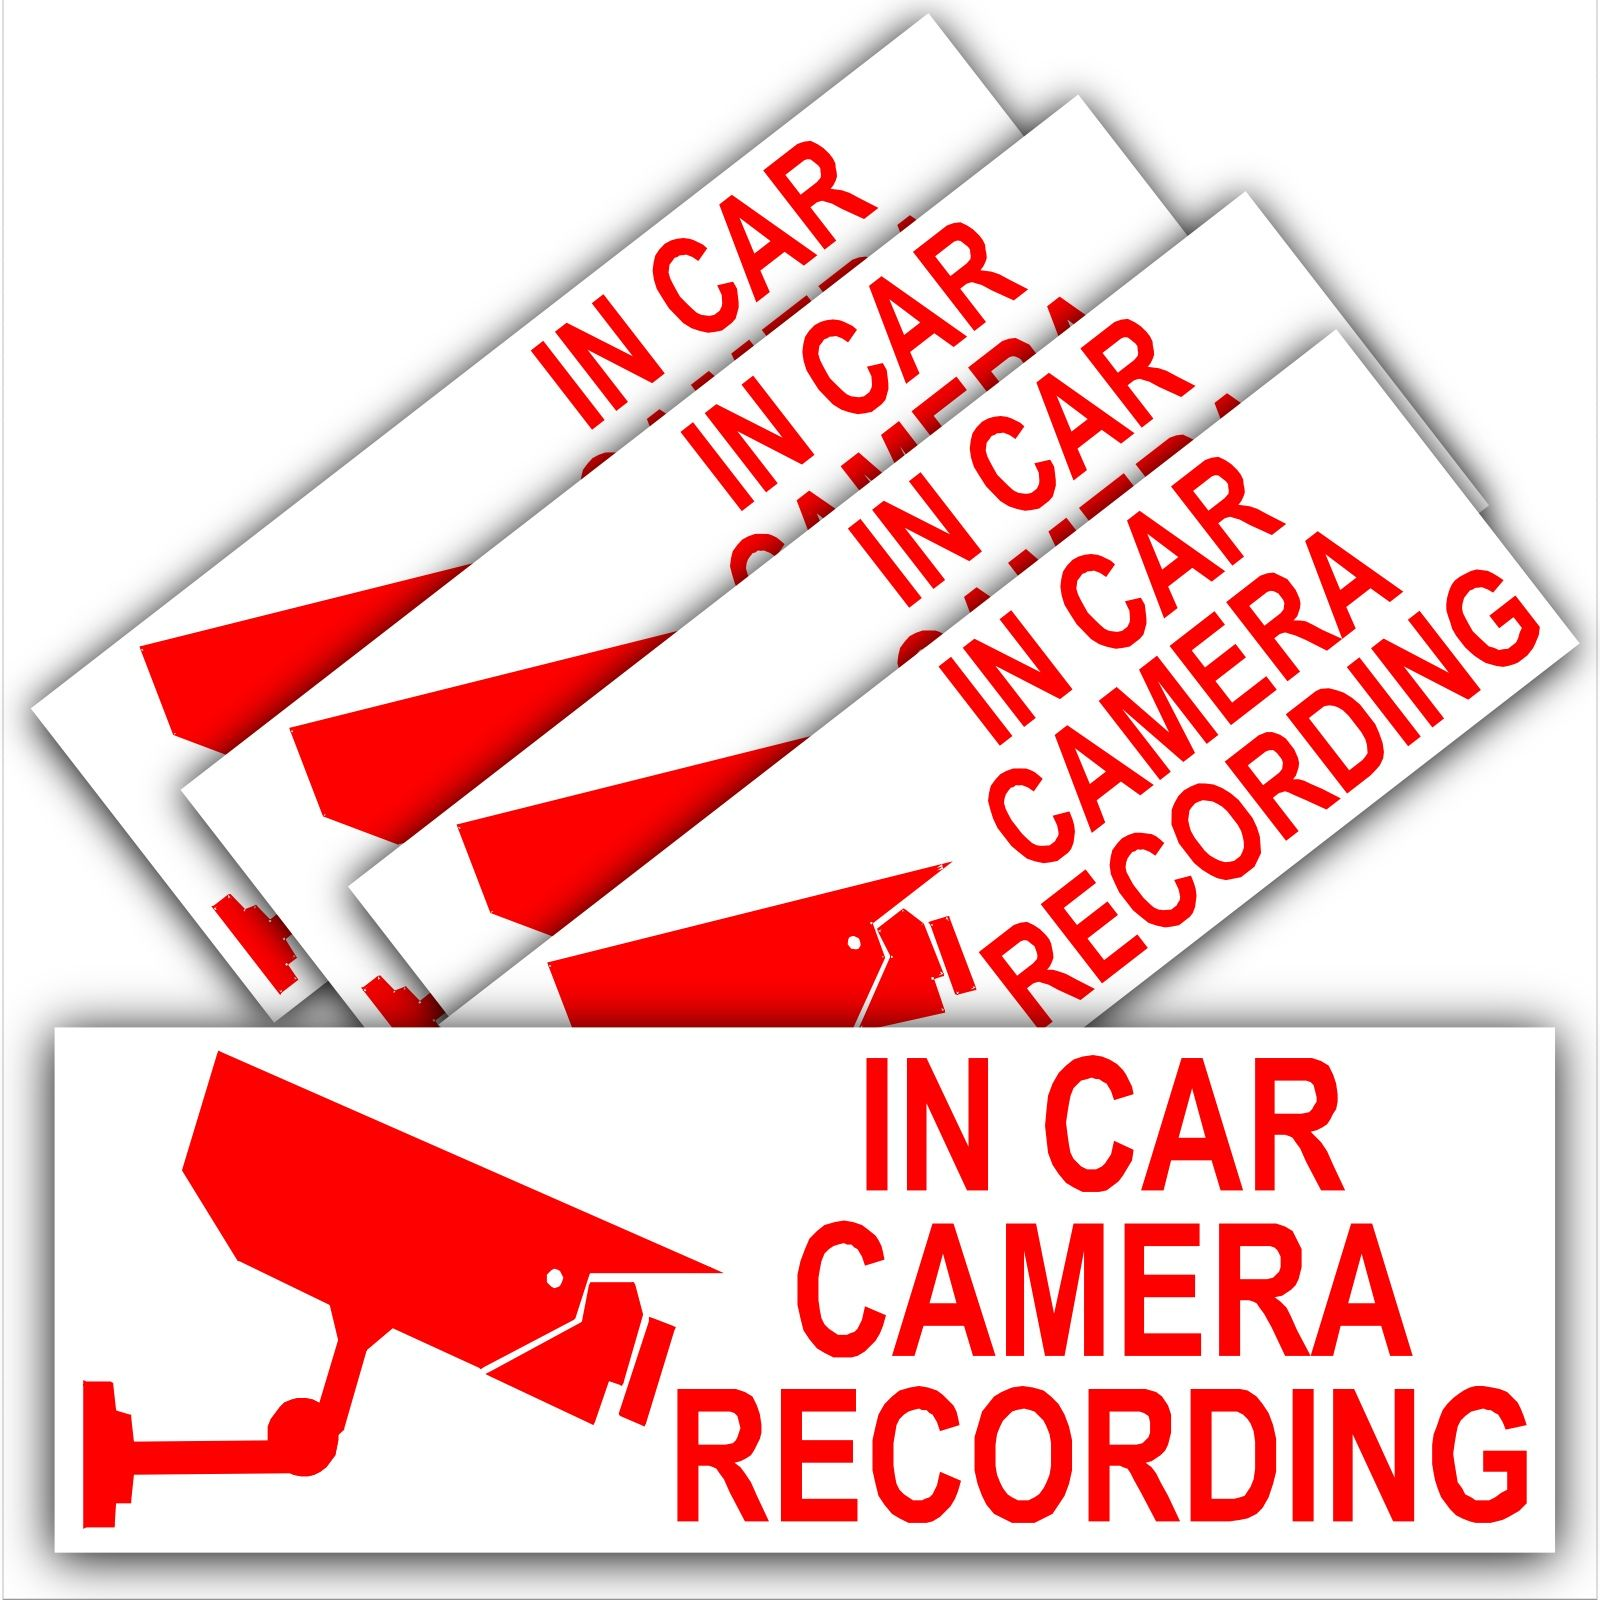 Platinum Place 1 x Warning SAFETY CAMERA Recording WINDOW Stickers-Vehicle Security Dash Cam Signs-CCTV,Car,Van,Truck,Taxi,Mini Cab,Bus,Coach,Go Pro 200mm